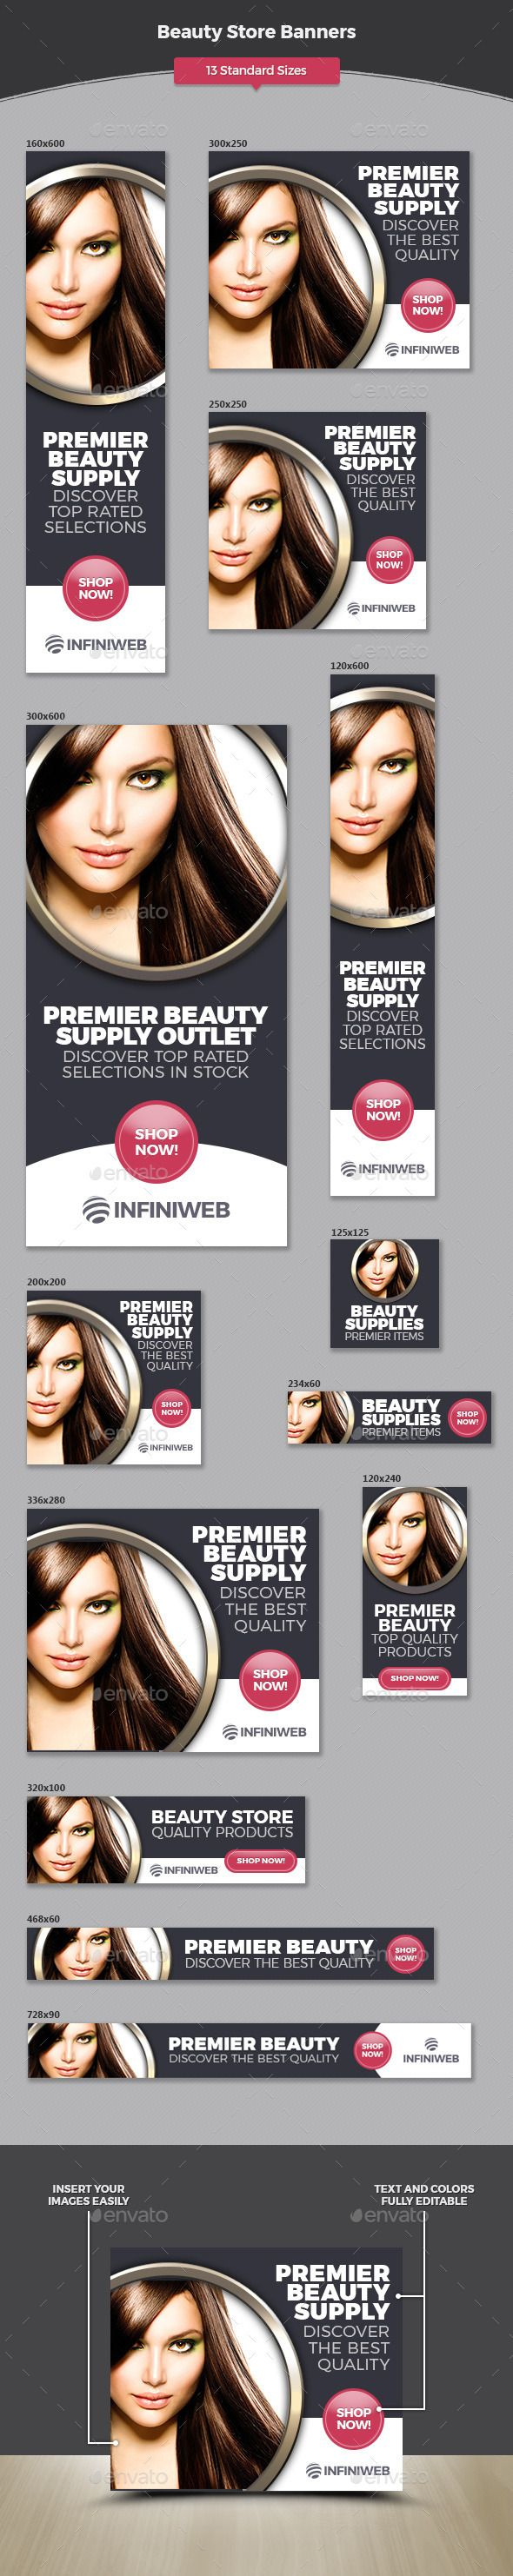 Beauty Store Banners Template #design #ads Download: http://graphicriver.net/item/beauty-store-banners/12741563?ref=ksioks